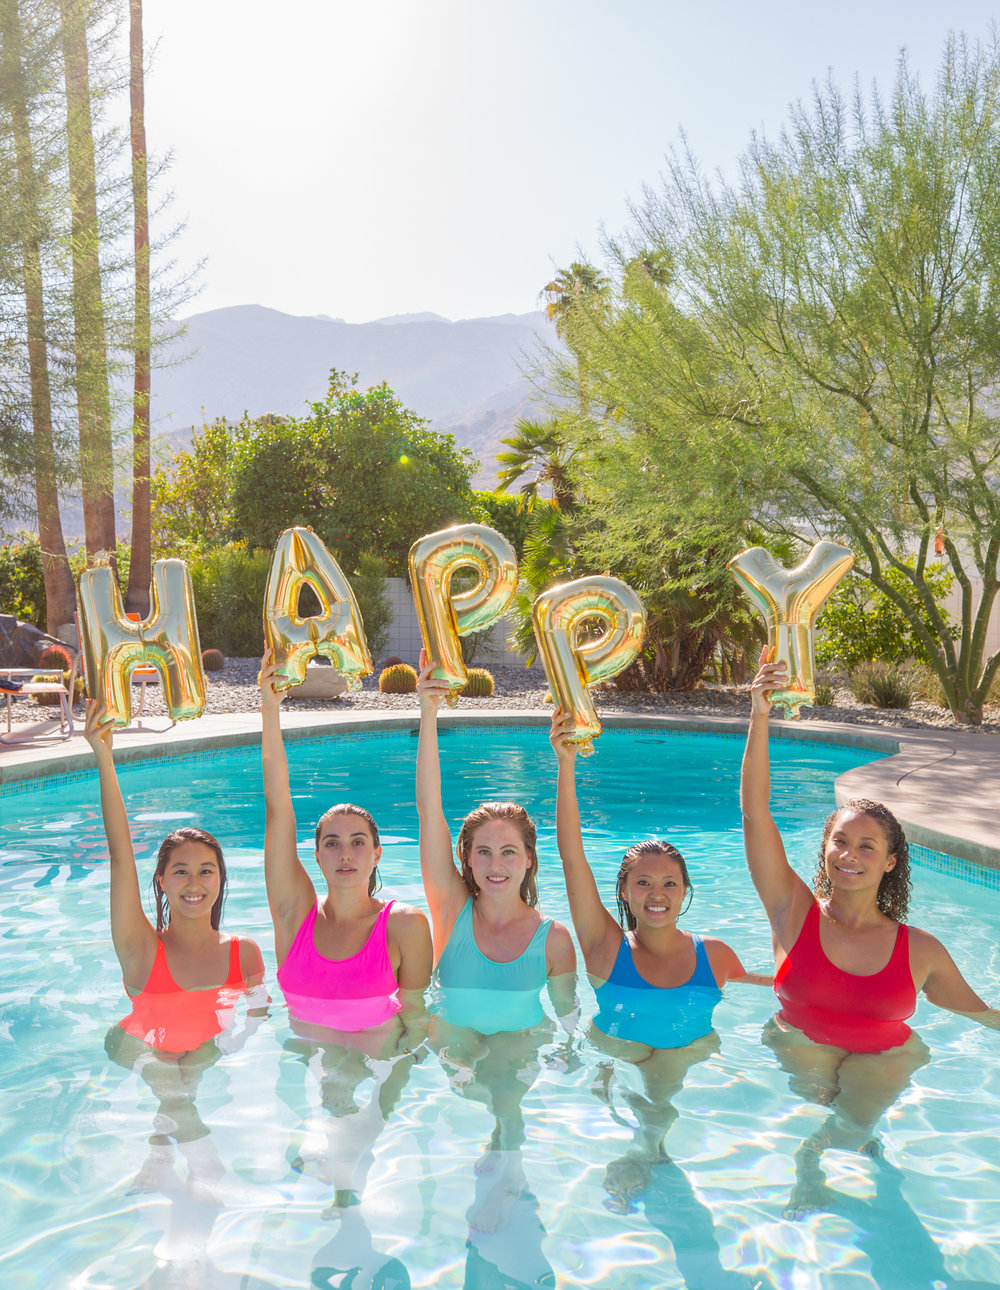 hanging with the Aqualillies at ACME House Co. in Palm Springs